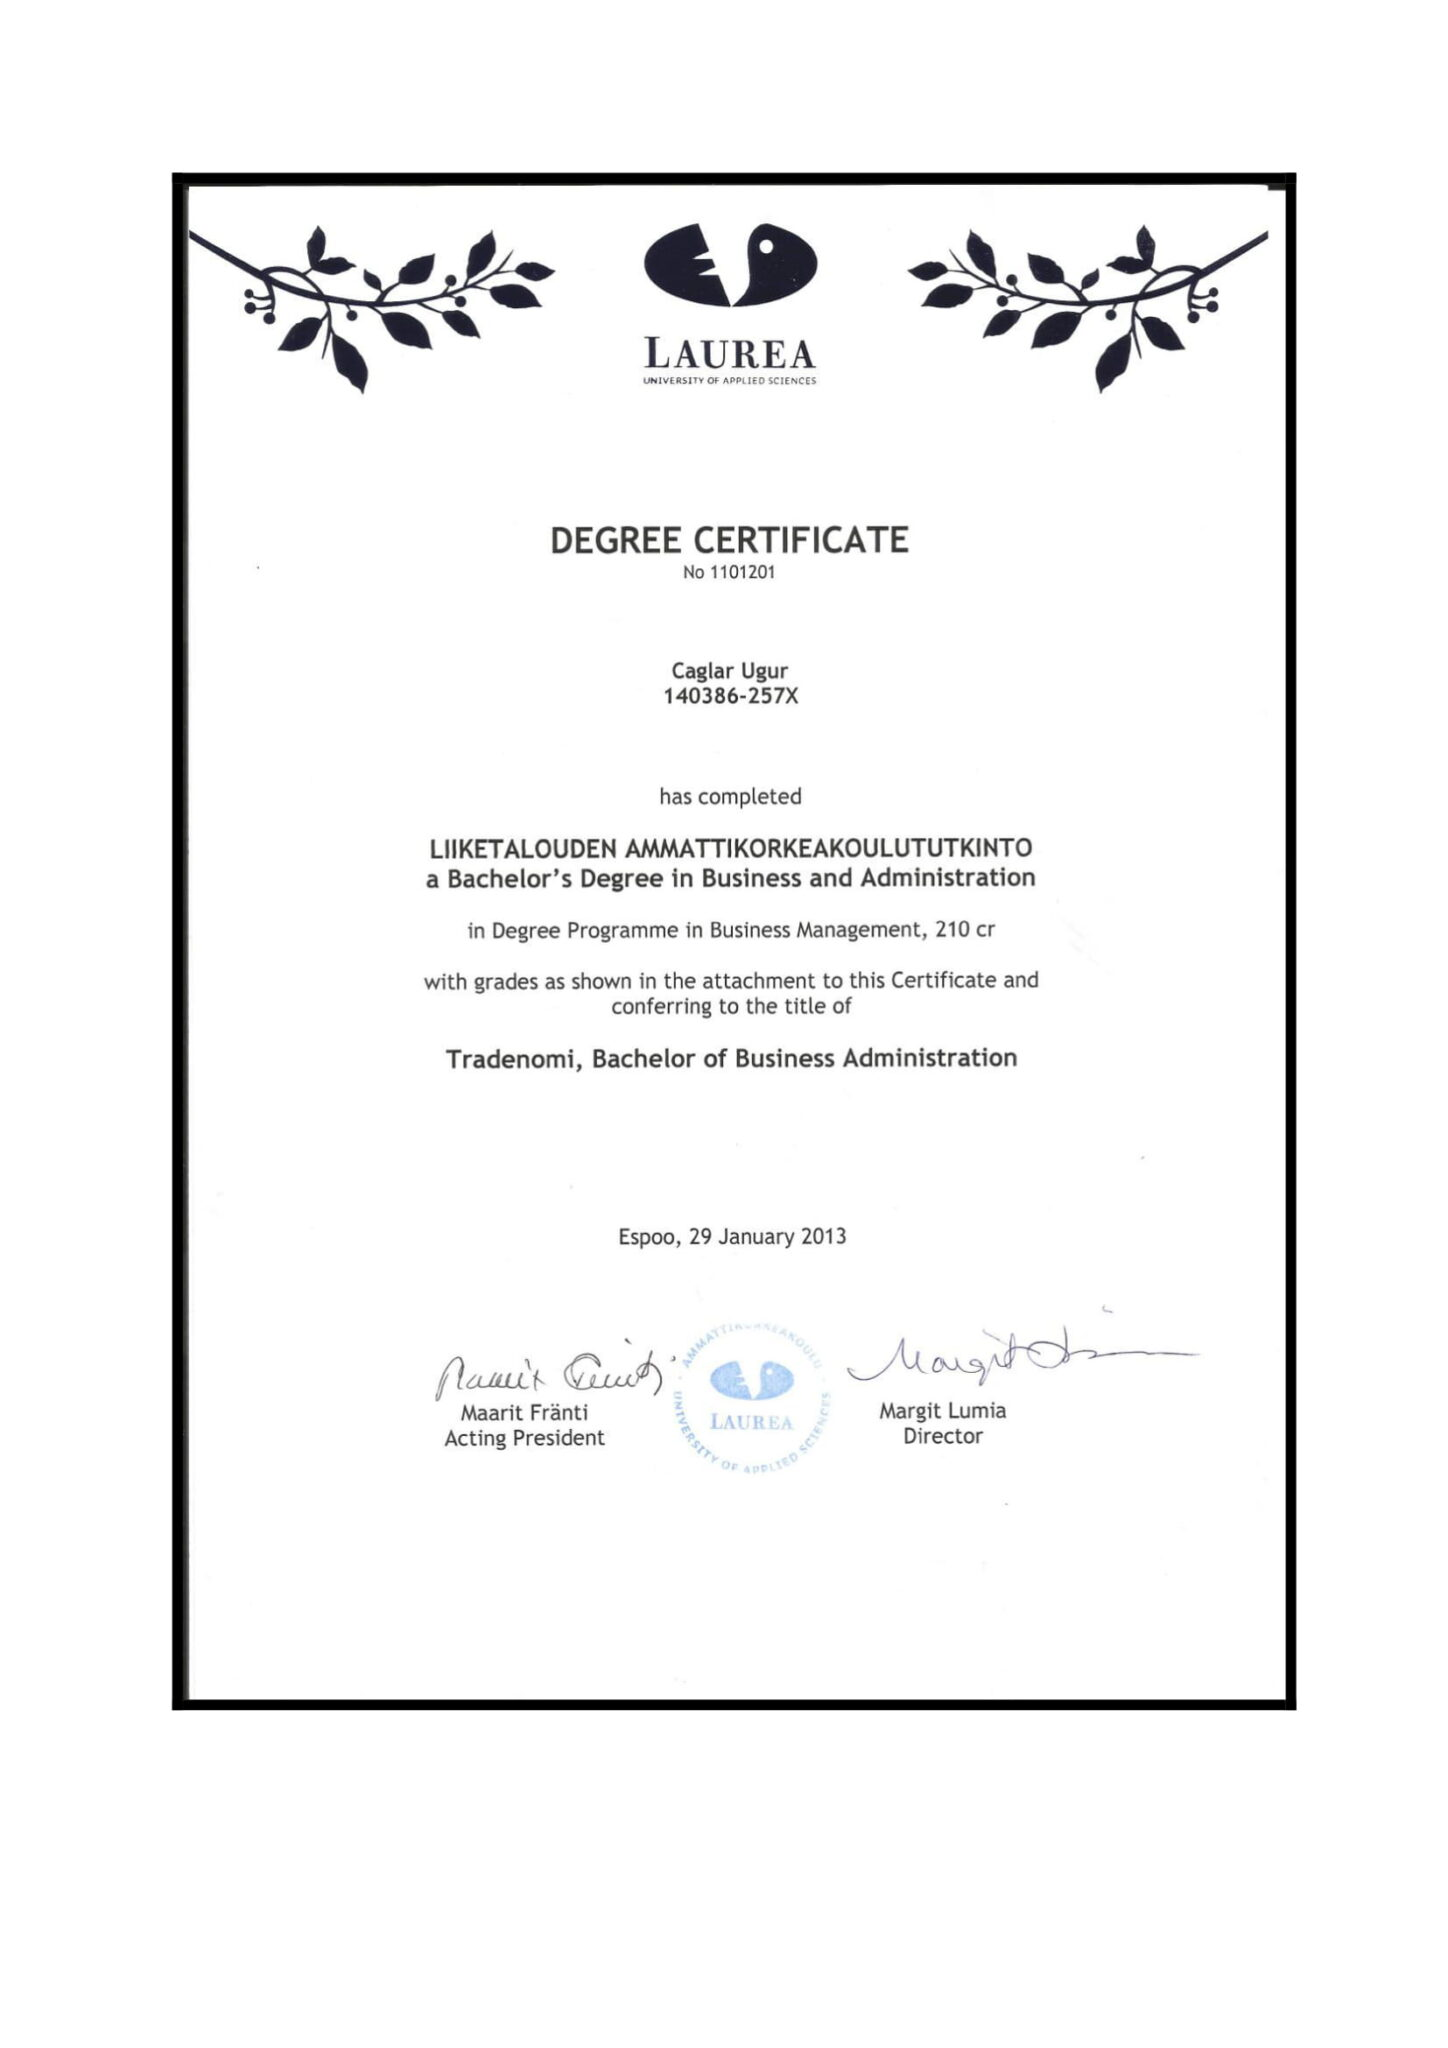 Çağlar Uğur Business Degree Laurea